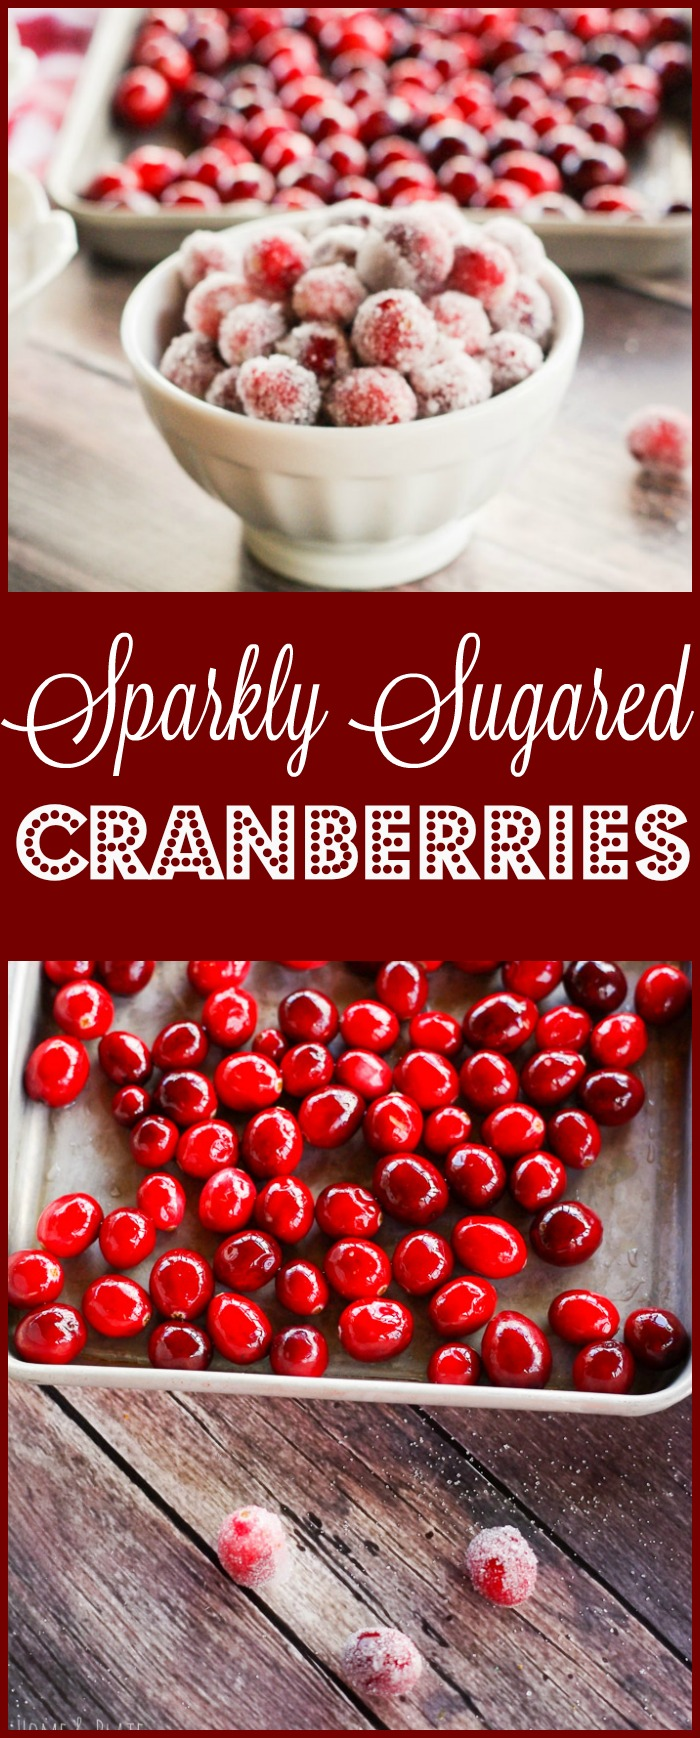 Sparkly Sugared Cranberries| www.homeandplate.com | Fresh cranberries rolled in granulated or coconut sugar make the perfect snack, cake topper or cocktail garnishment.